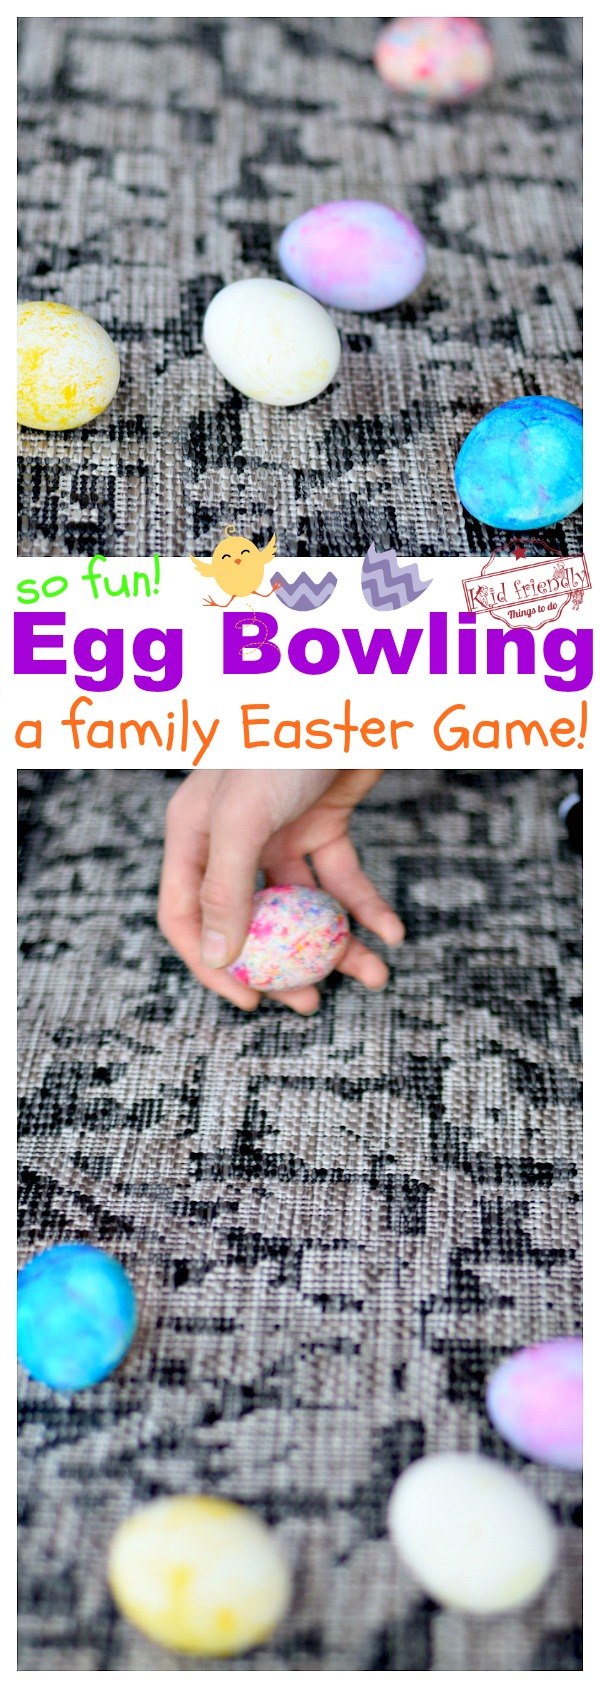 Egg Bowling Easter Game